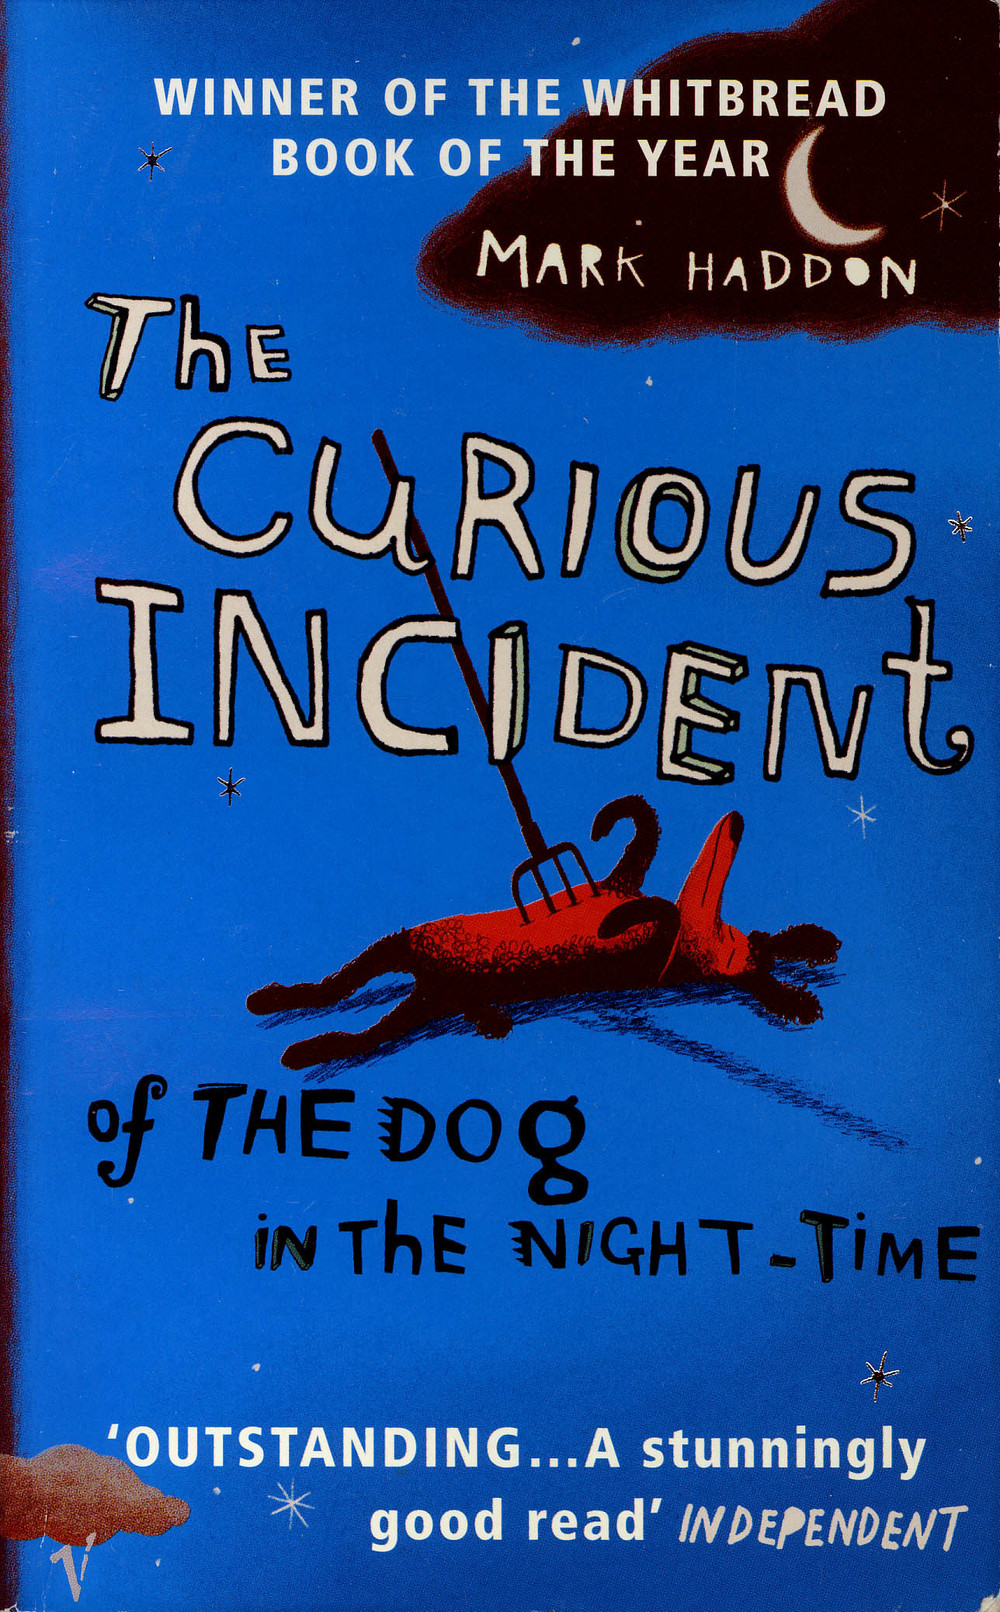 The Curious Incident of the Dog in the Night-Time   by Mark Haddon (via    Amber Lanier Nagle   )